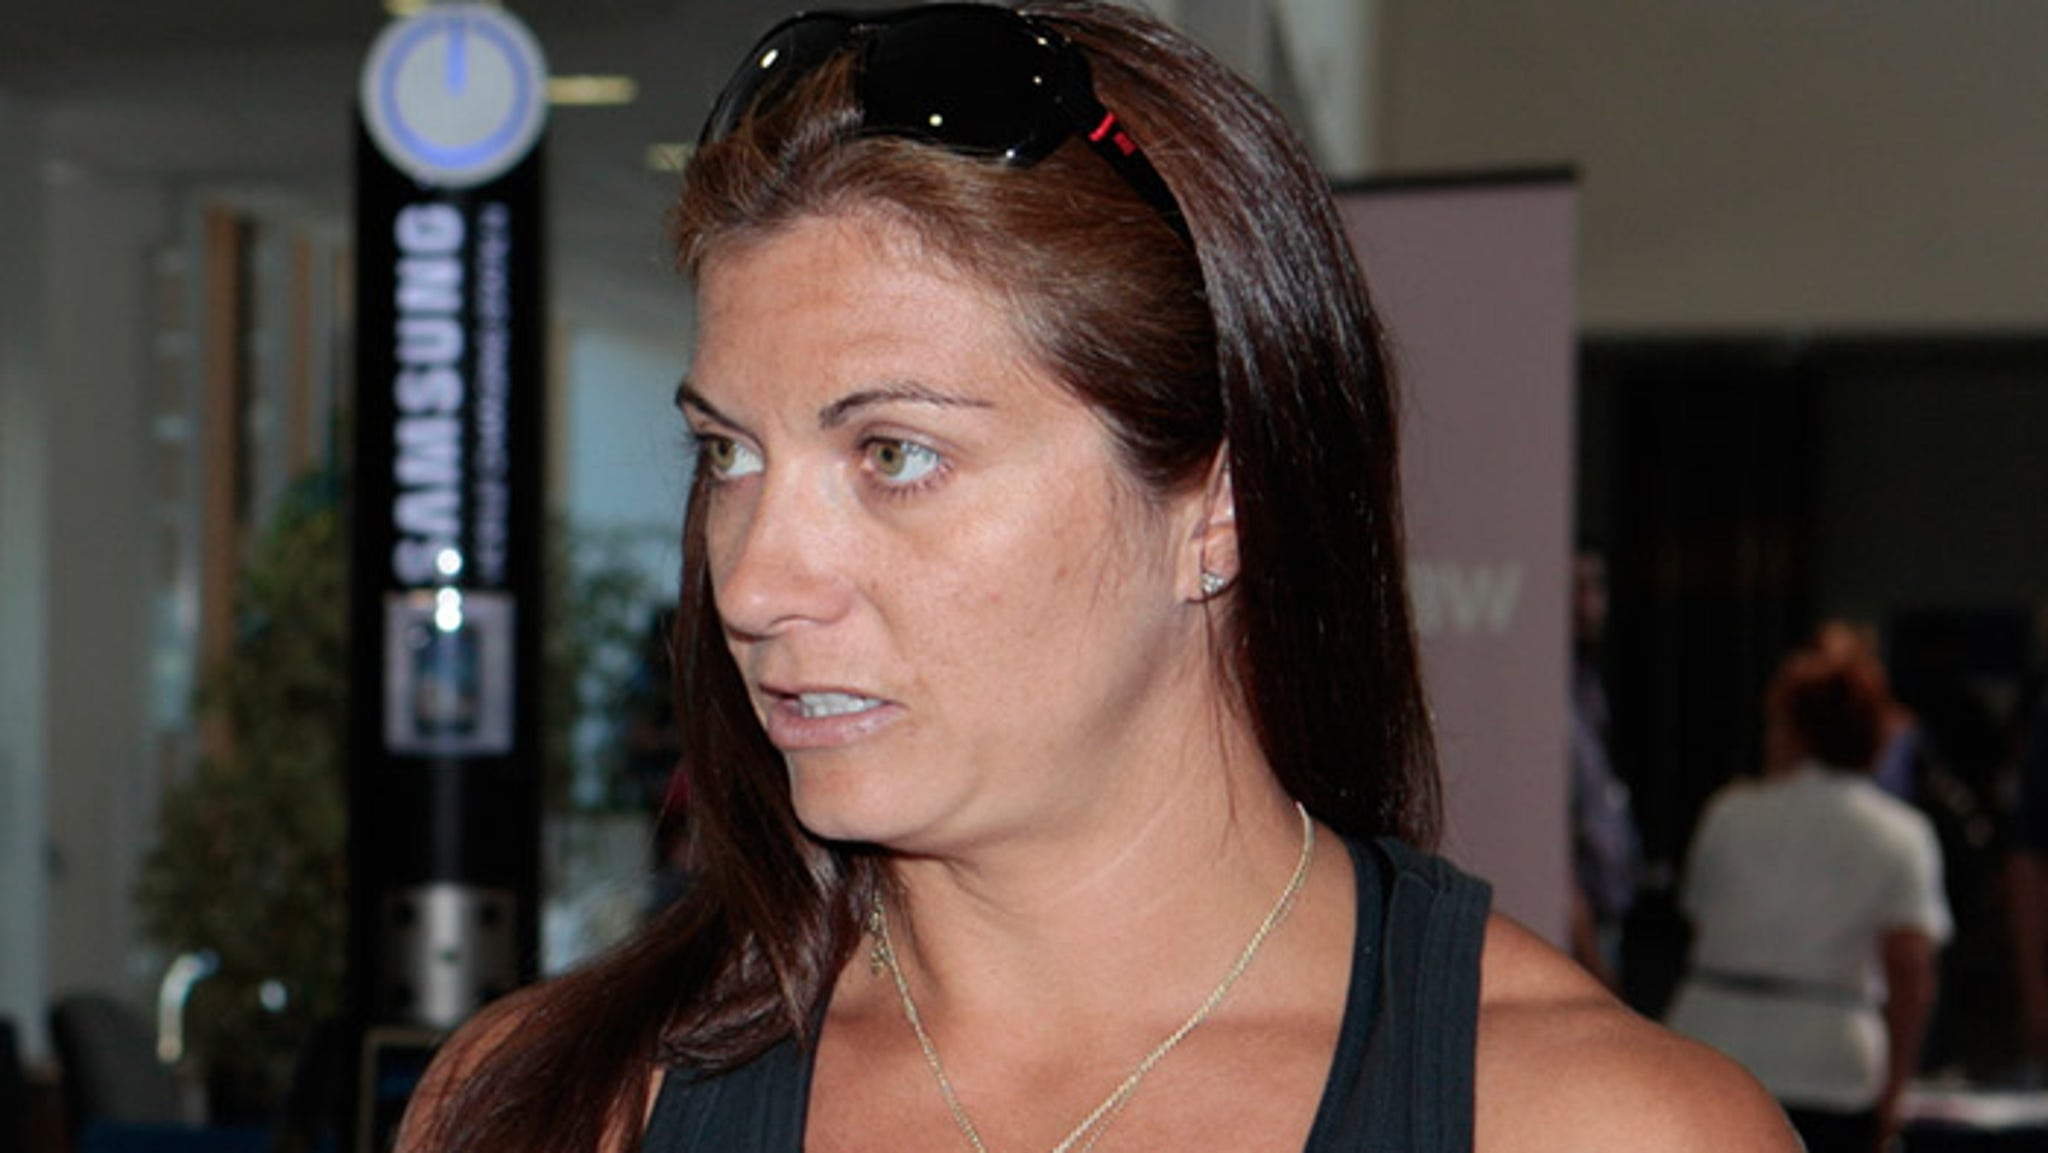 Misty May-Treanor -- HACKED NUDE PIC IS FAKE  Clearly